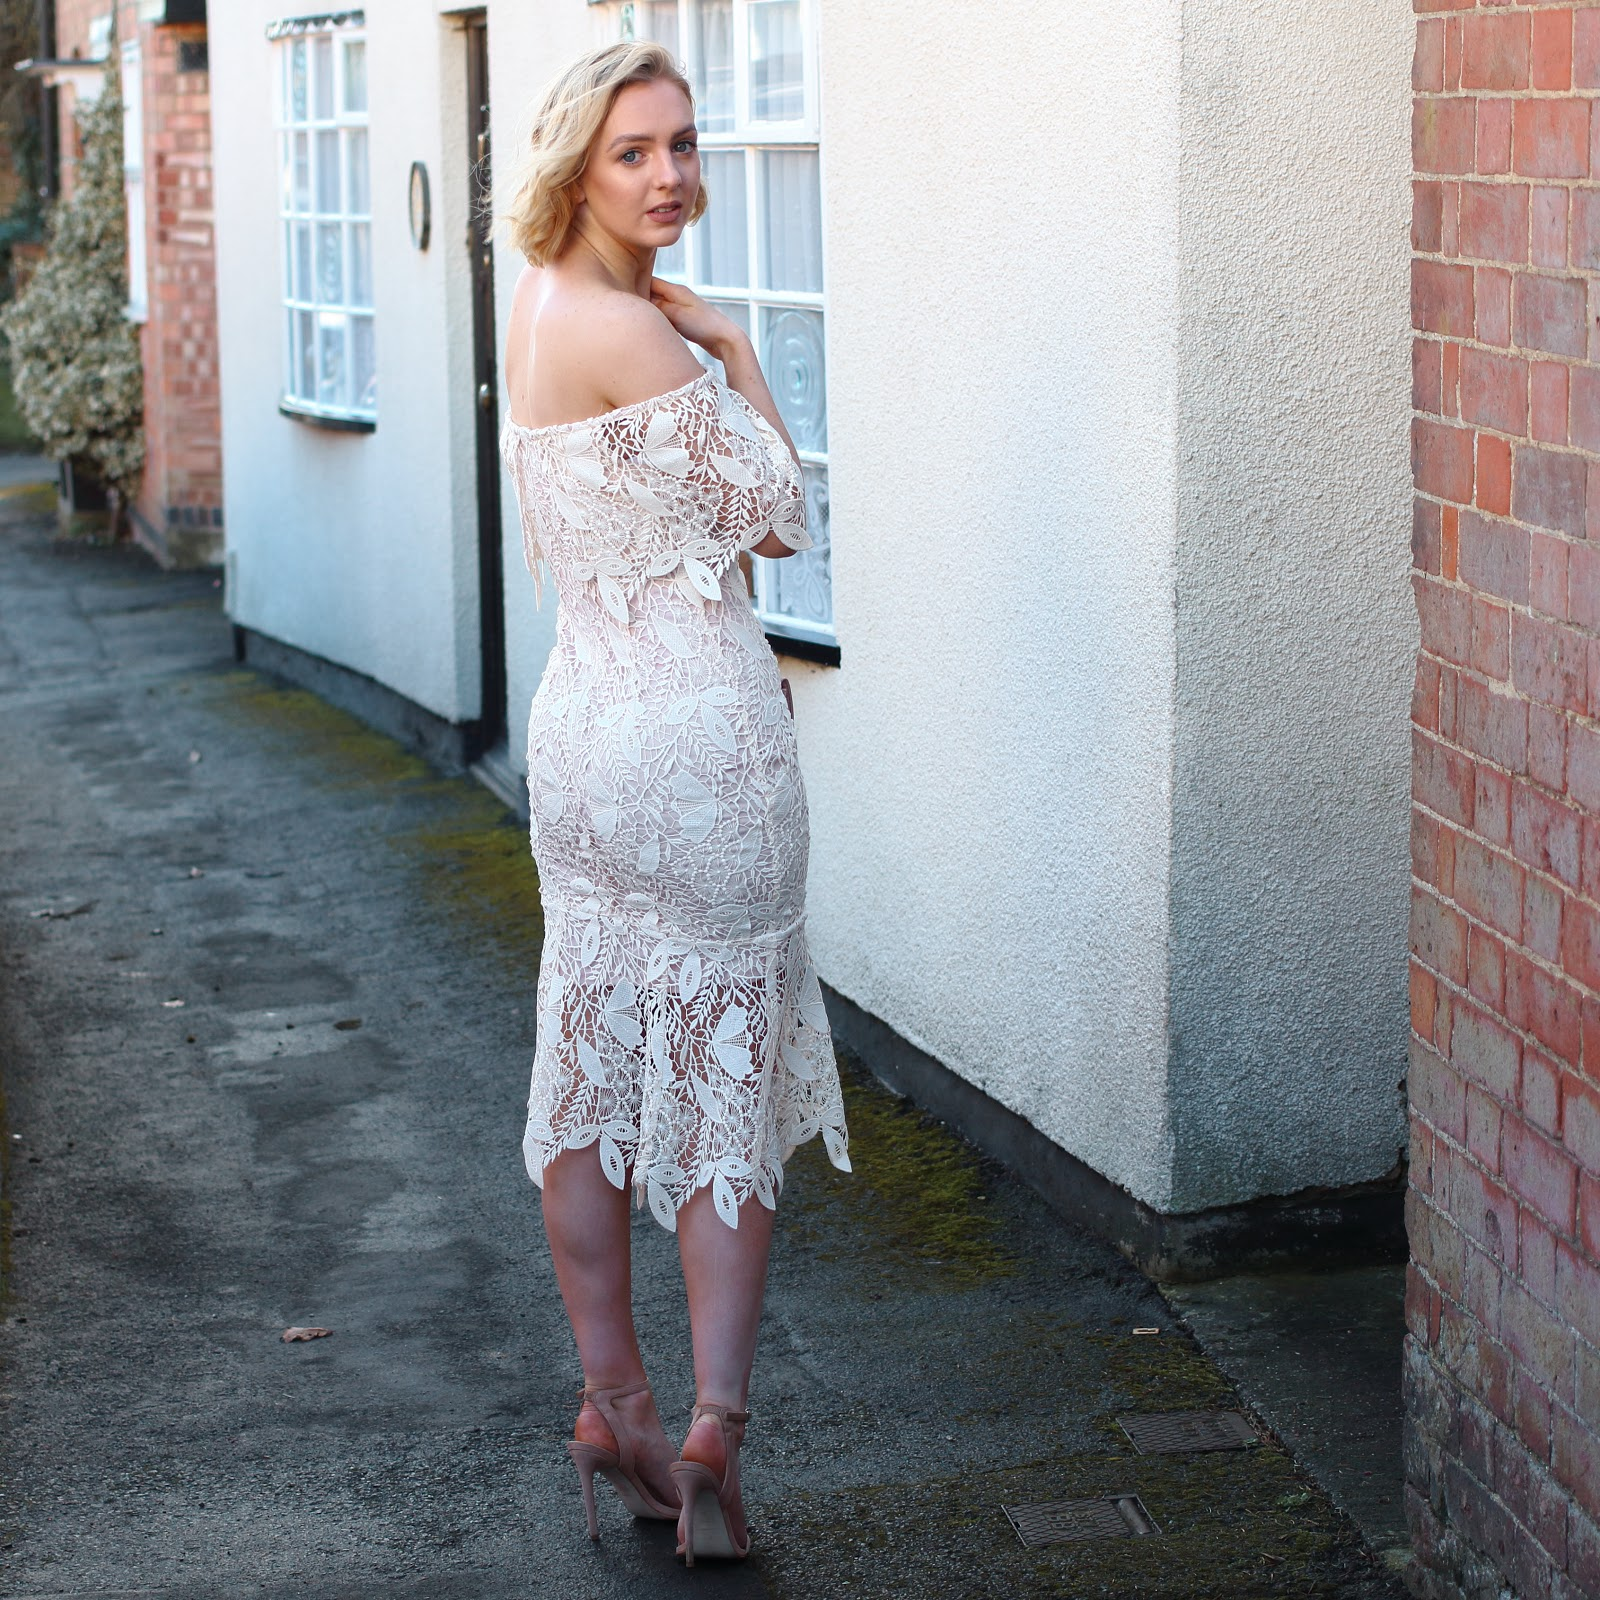 races, Ascot, aintree, Coast, tanya, lace, shift, dress, off the shoulder, pink, event, classic, dressing, tips, style